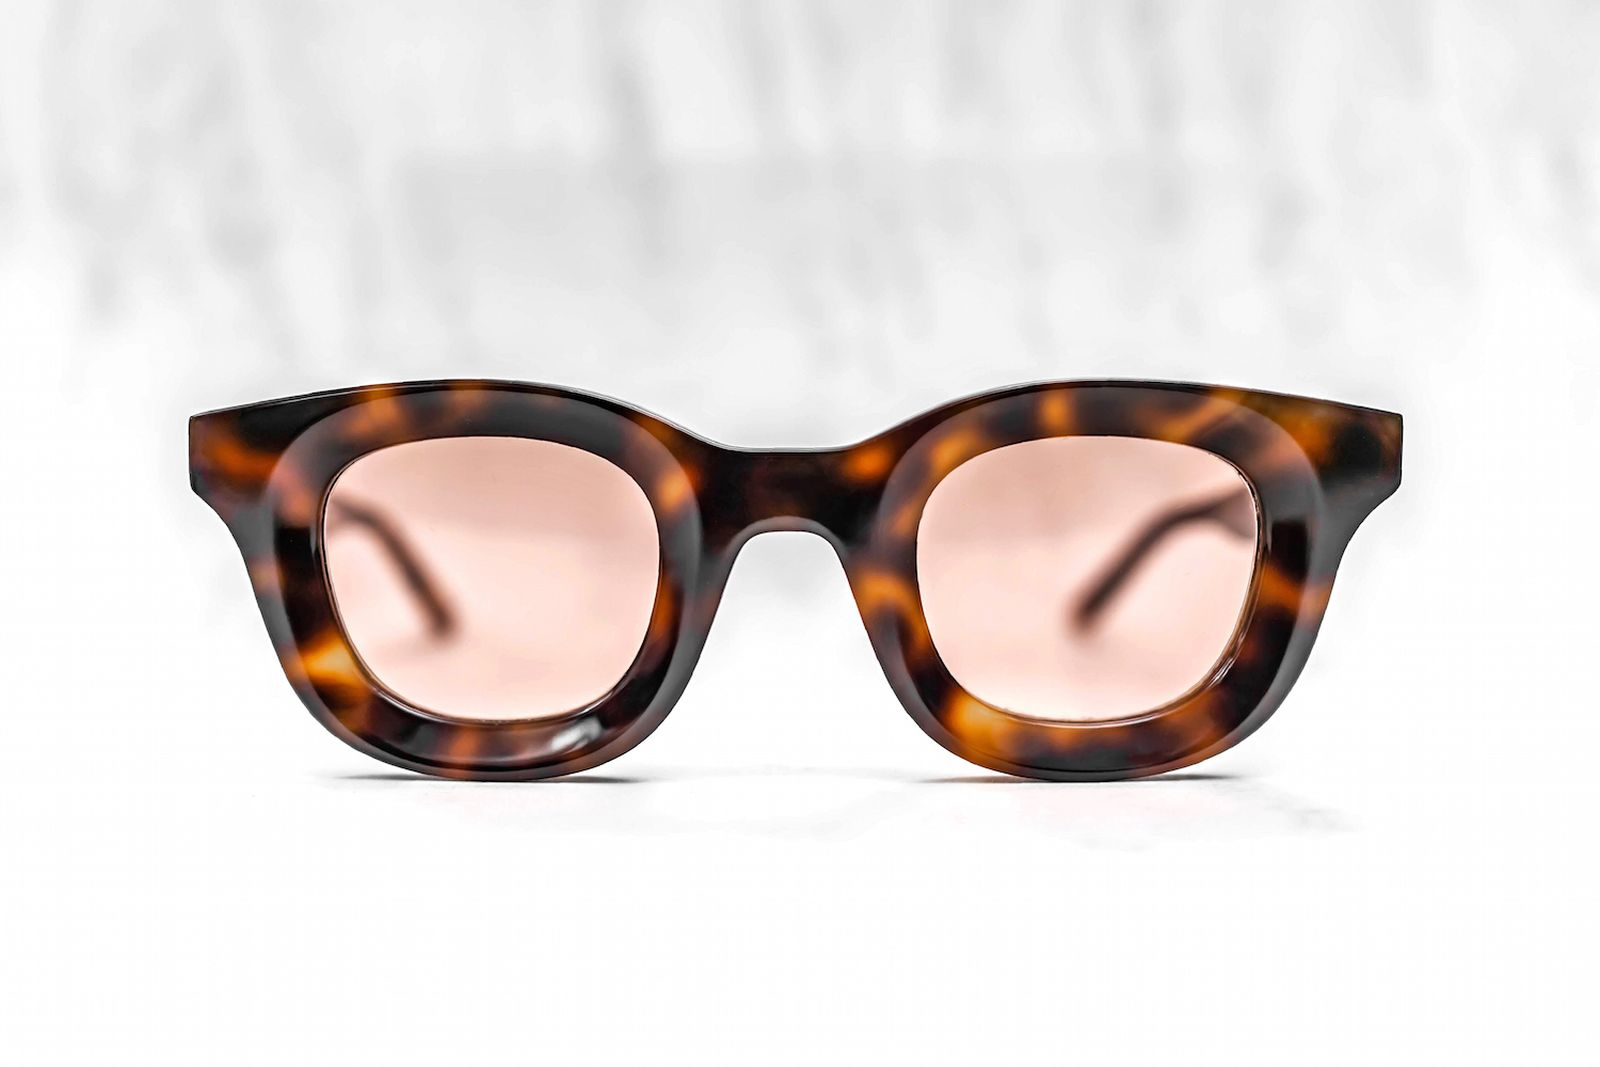 thierry lasry rhude rhodeo sunglasses rude